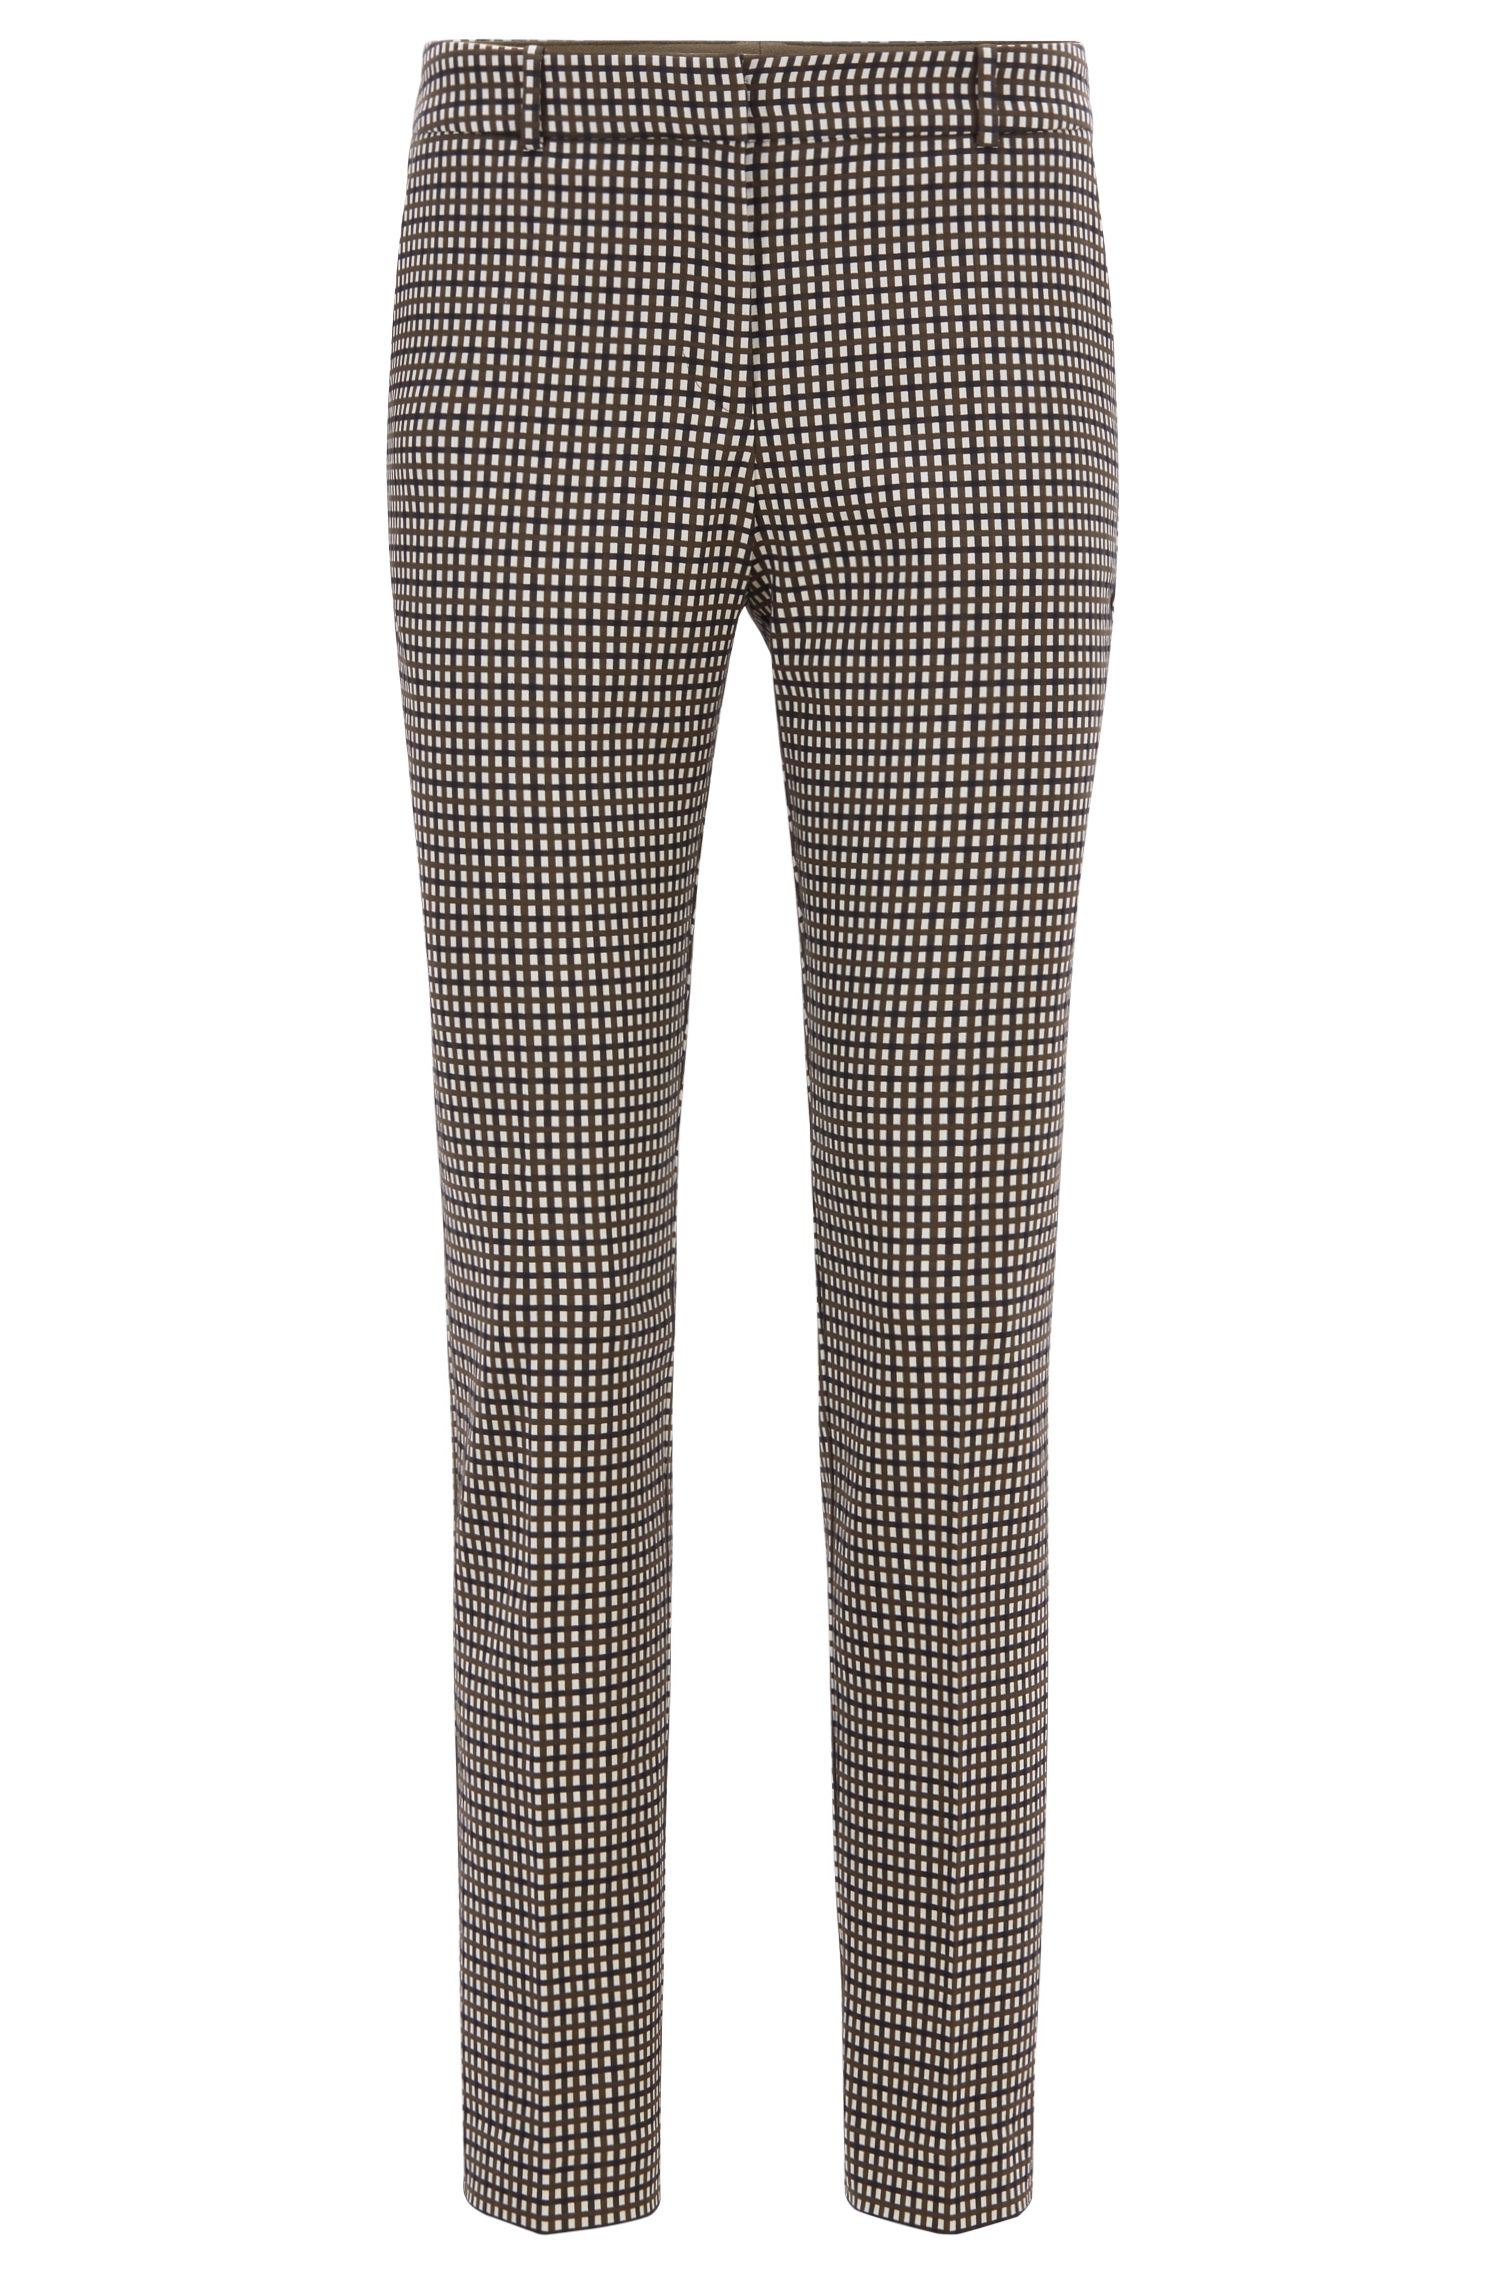 Micro-checked cropped trousers in a stretch-cotton blend, Patterned